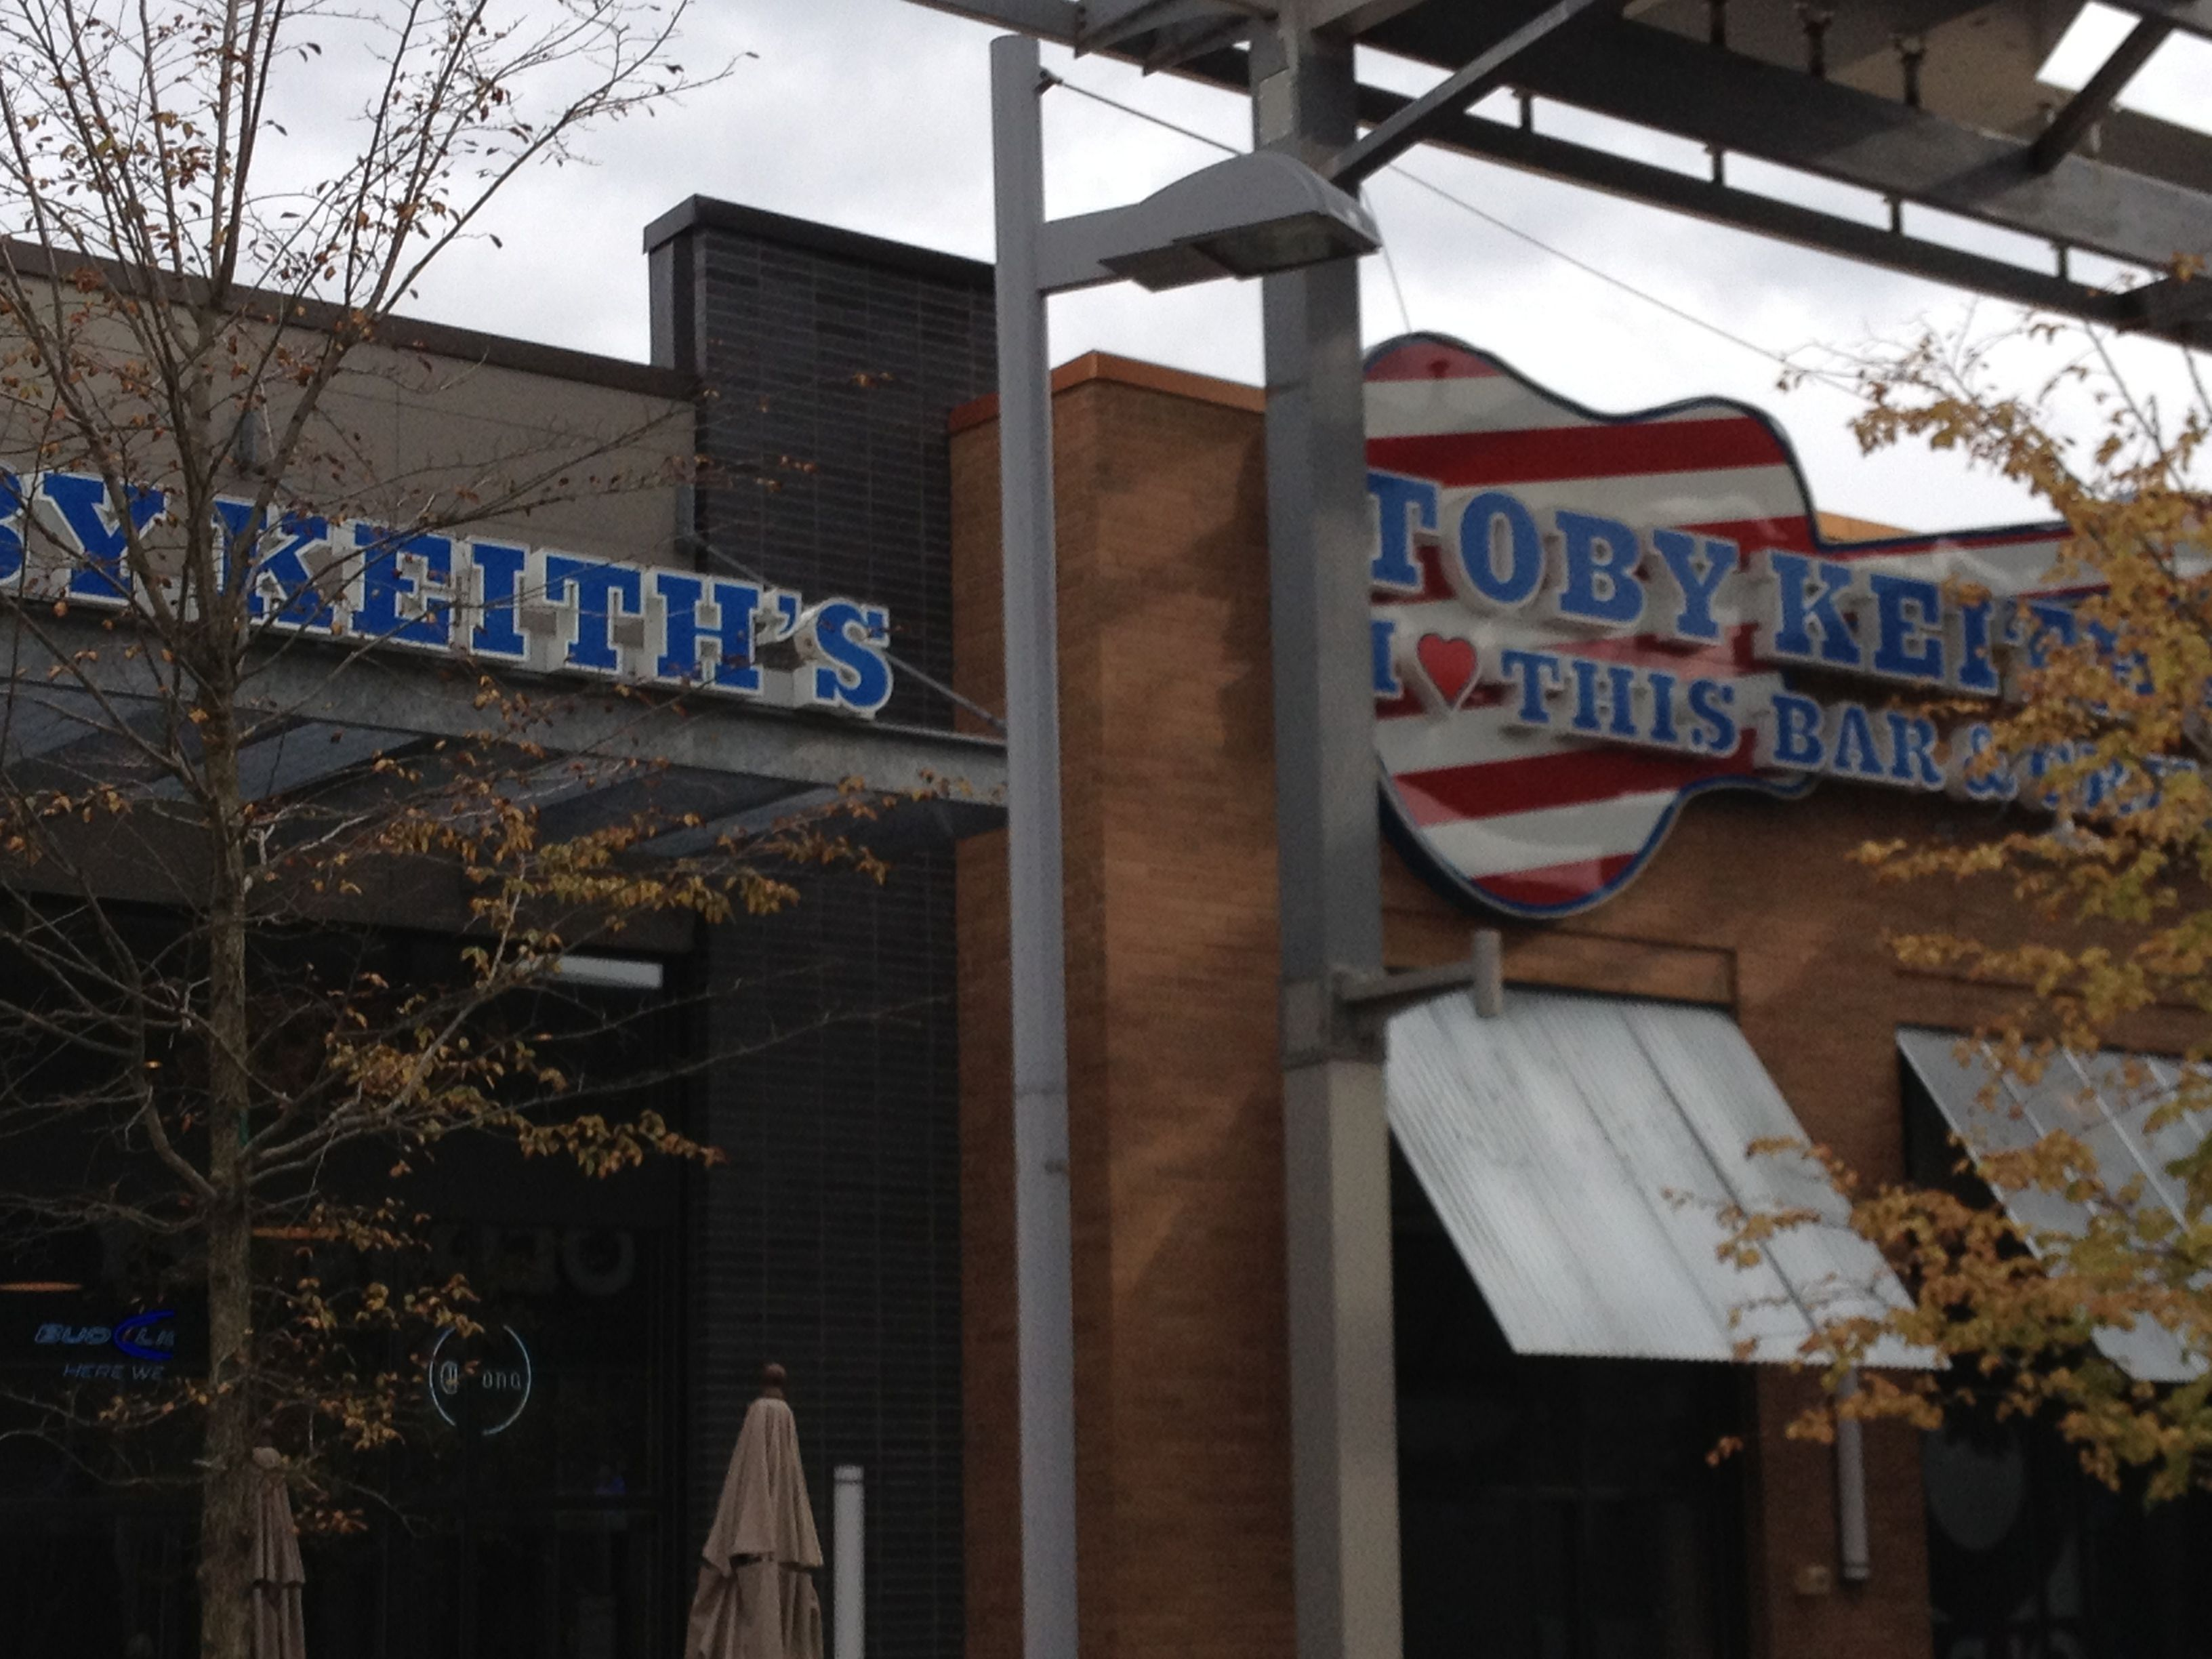 Toby Keith S Patriot Place Foxborough Ma The Ultimate Guy Place Foxborough Places Keith